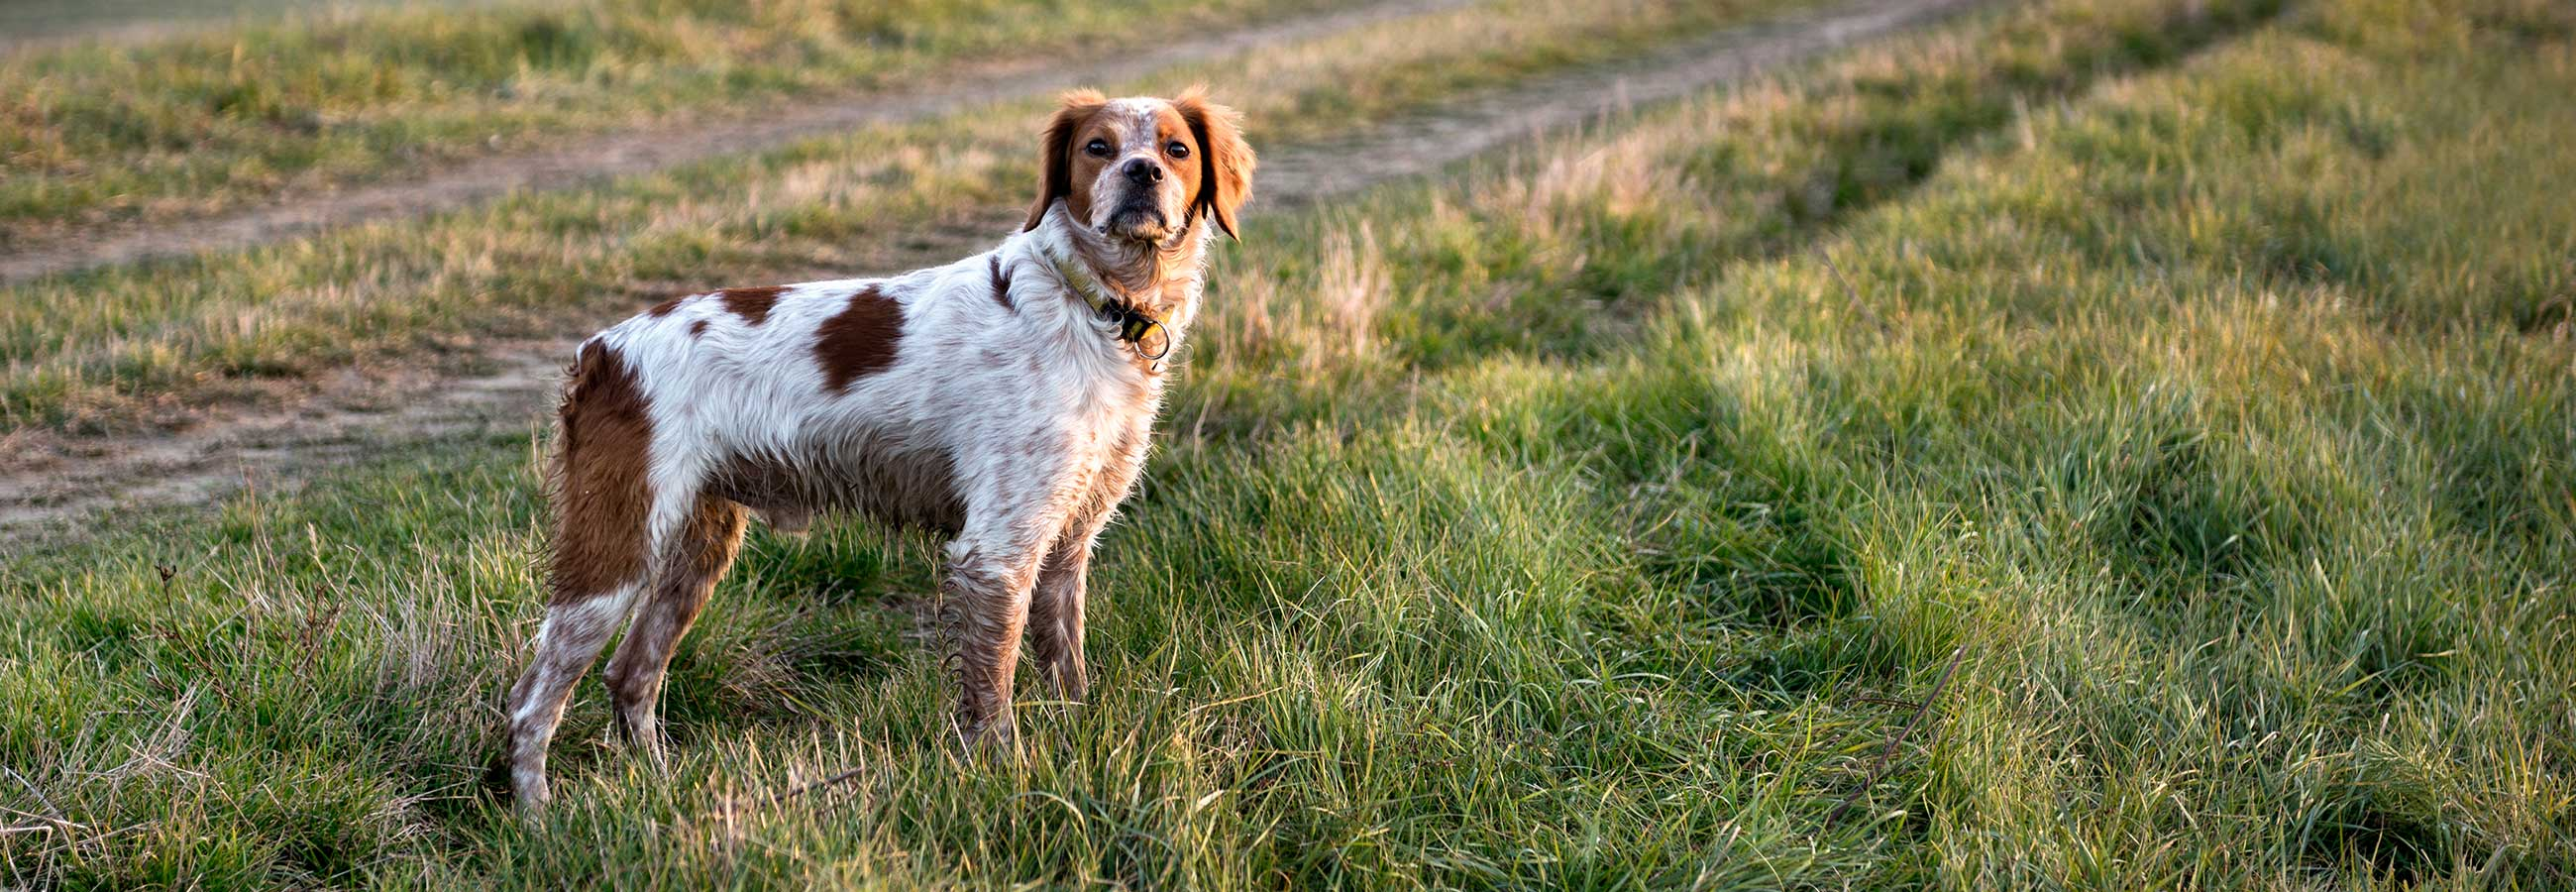 Hunting bird dog standing in a field at sunrise